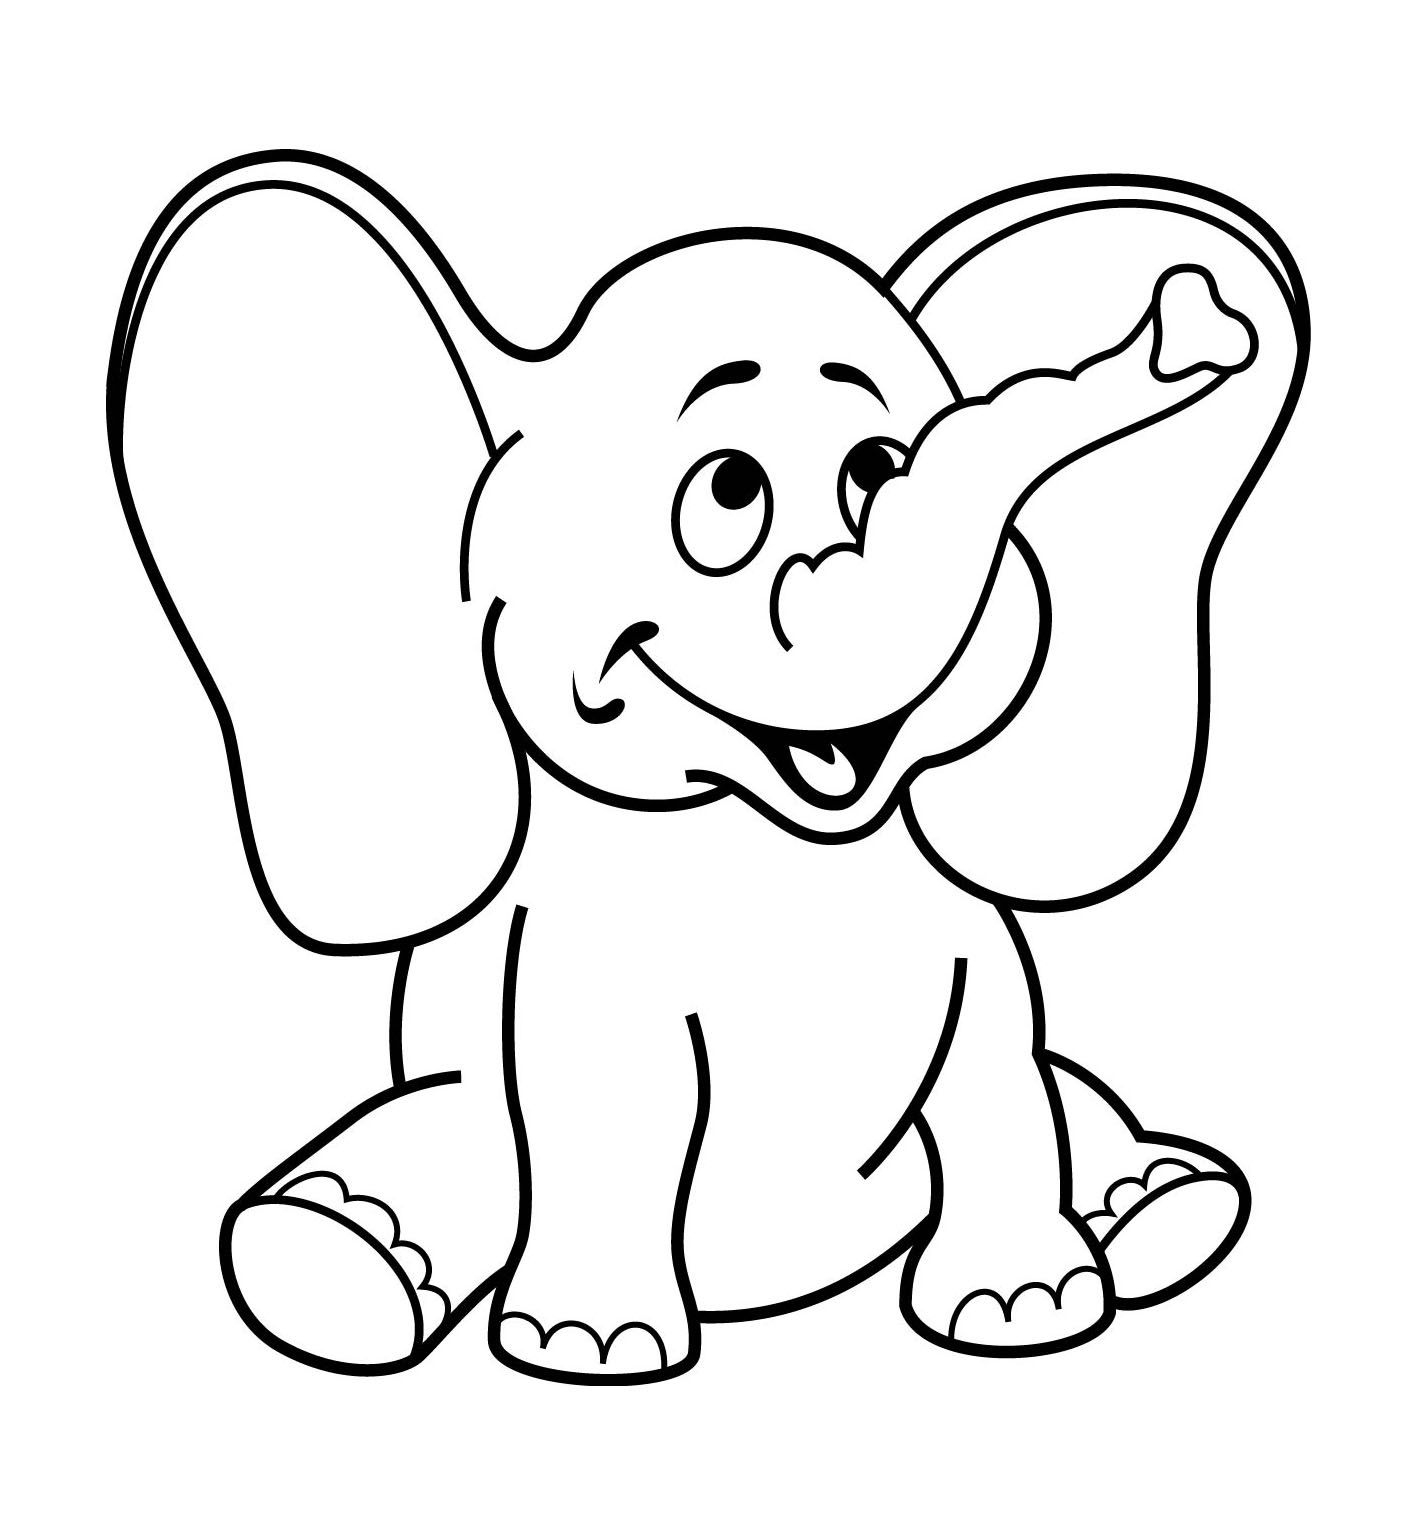 Image Result For Printable 2 Year Old Activities   Worksheets - Free Printable Coloring Pages For 2 Year Olds